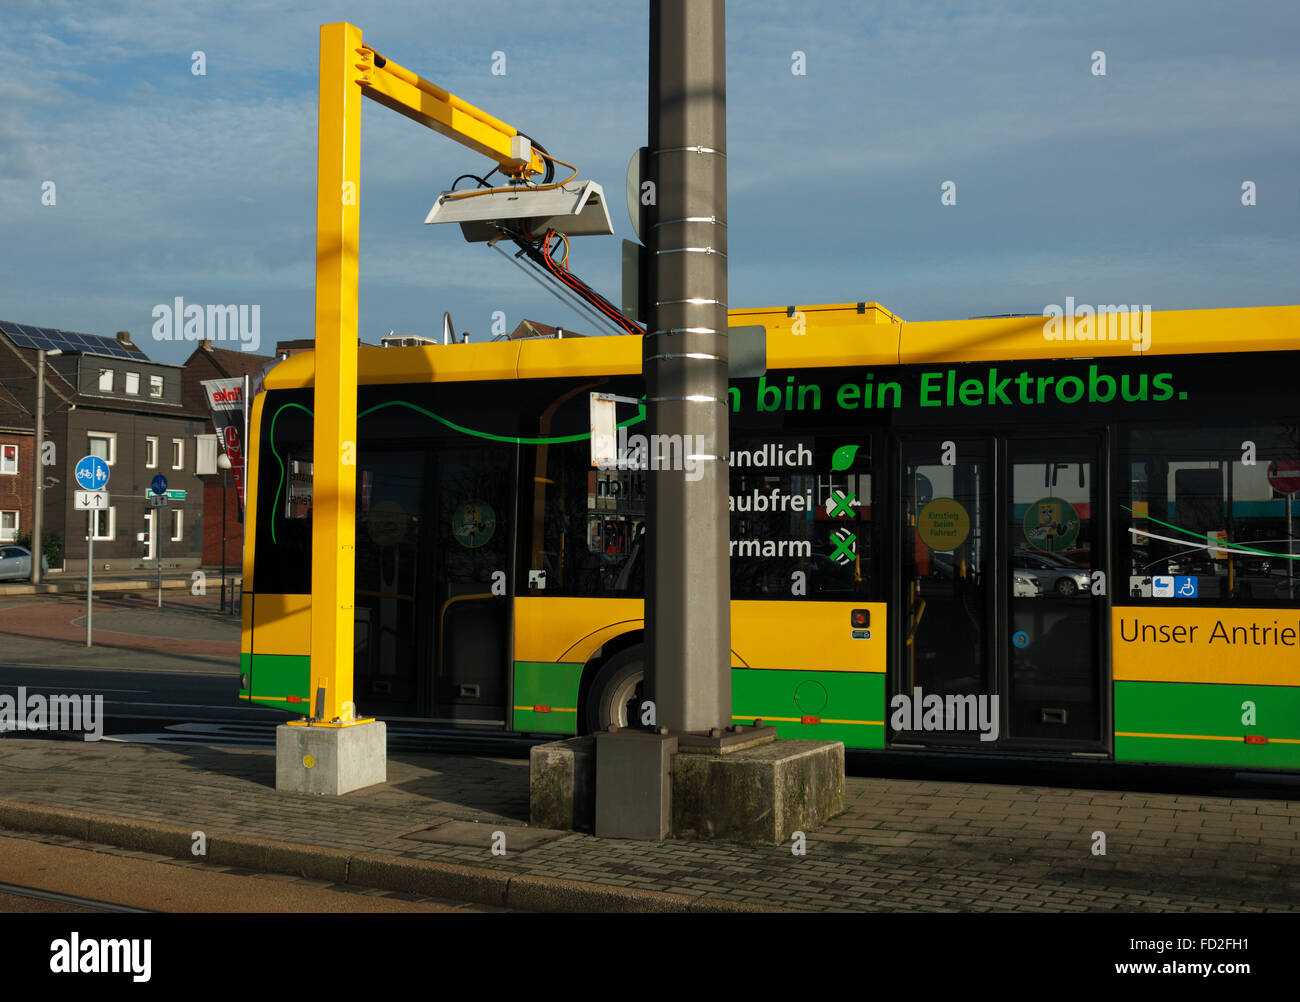 tranport, road traffic, passenger transportation, electric bus at a charging station, Battery electric bus Solaris - Stock Image